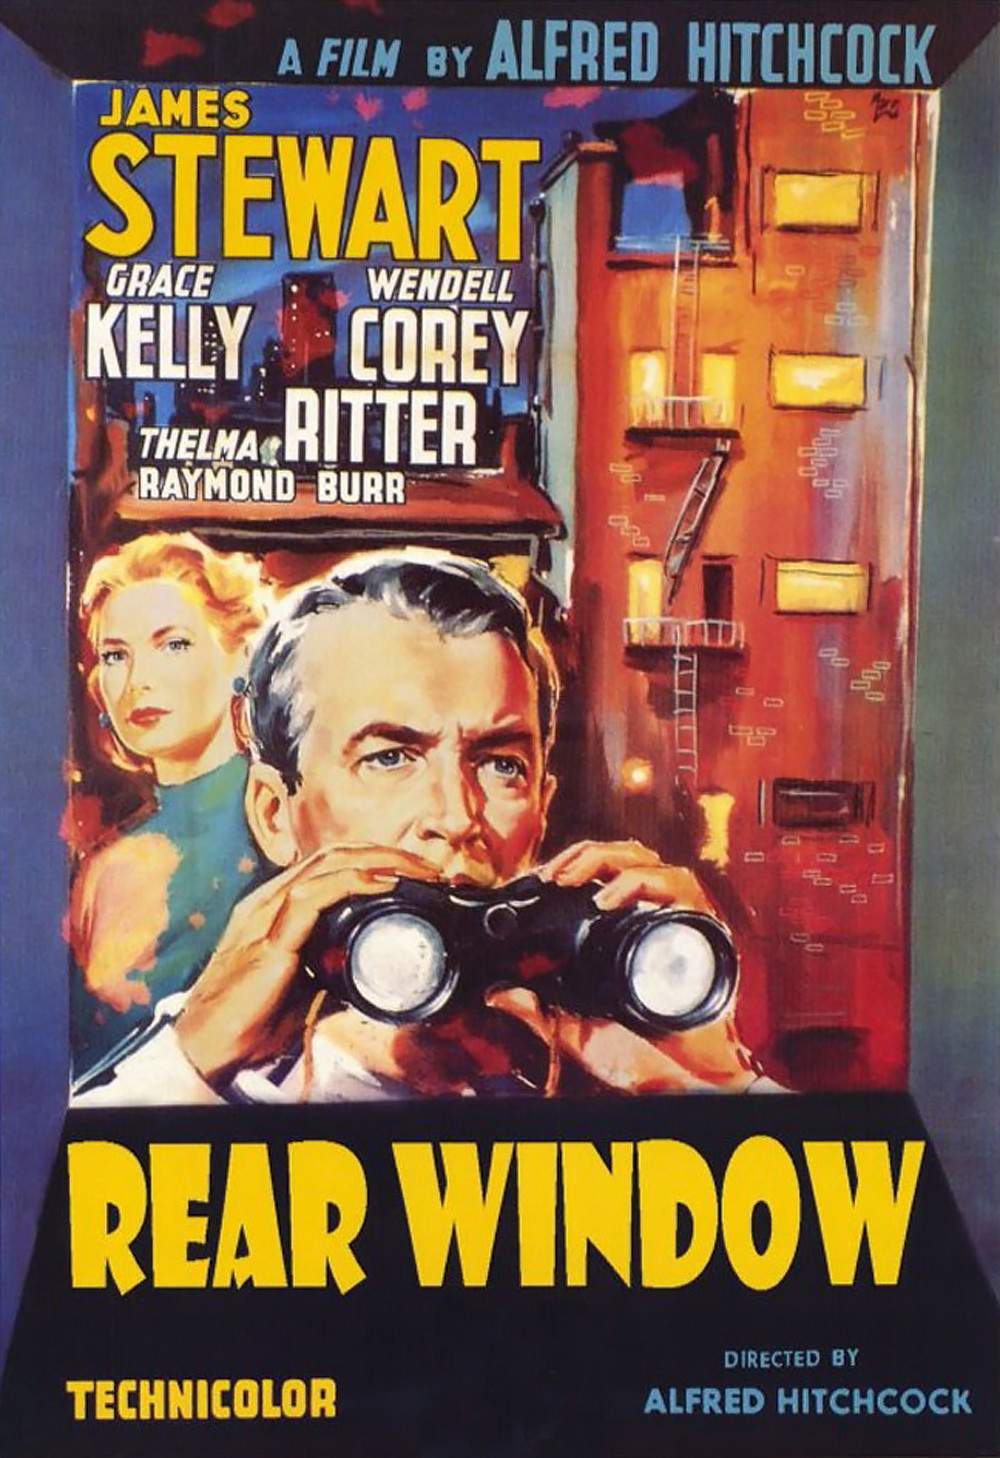 [FCPS] REAR WINDOW